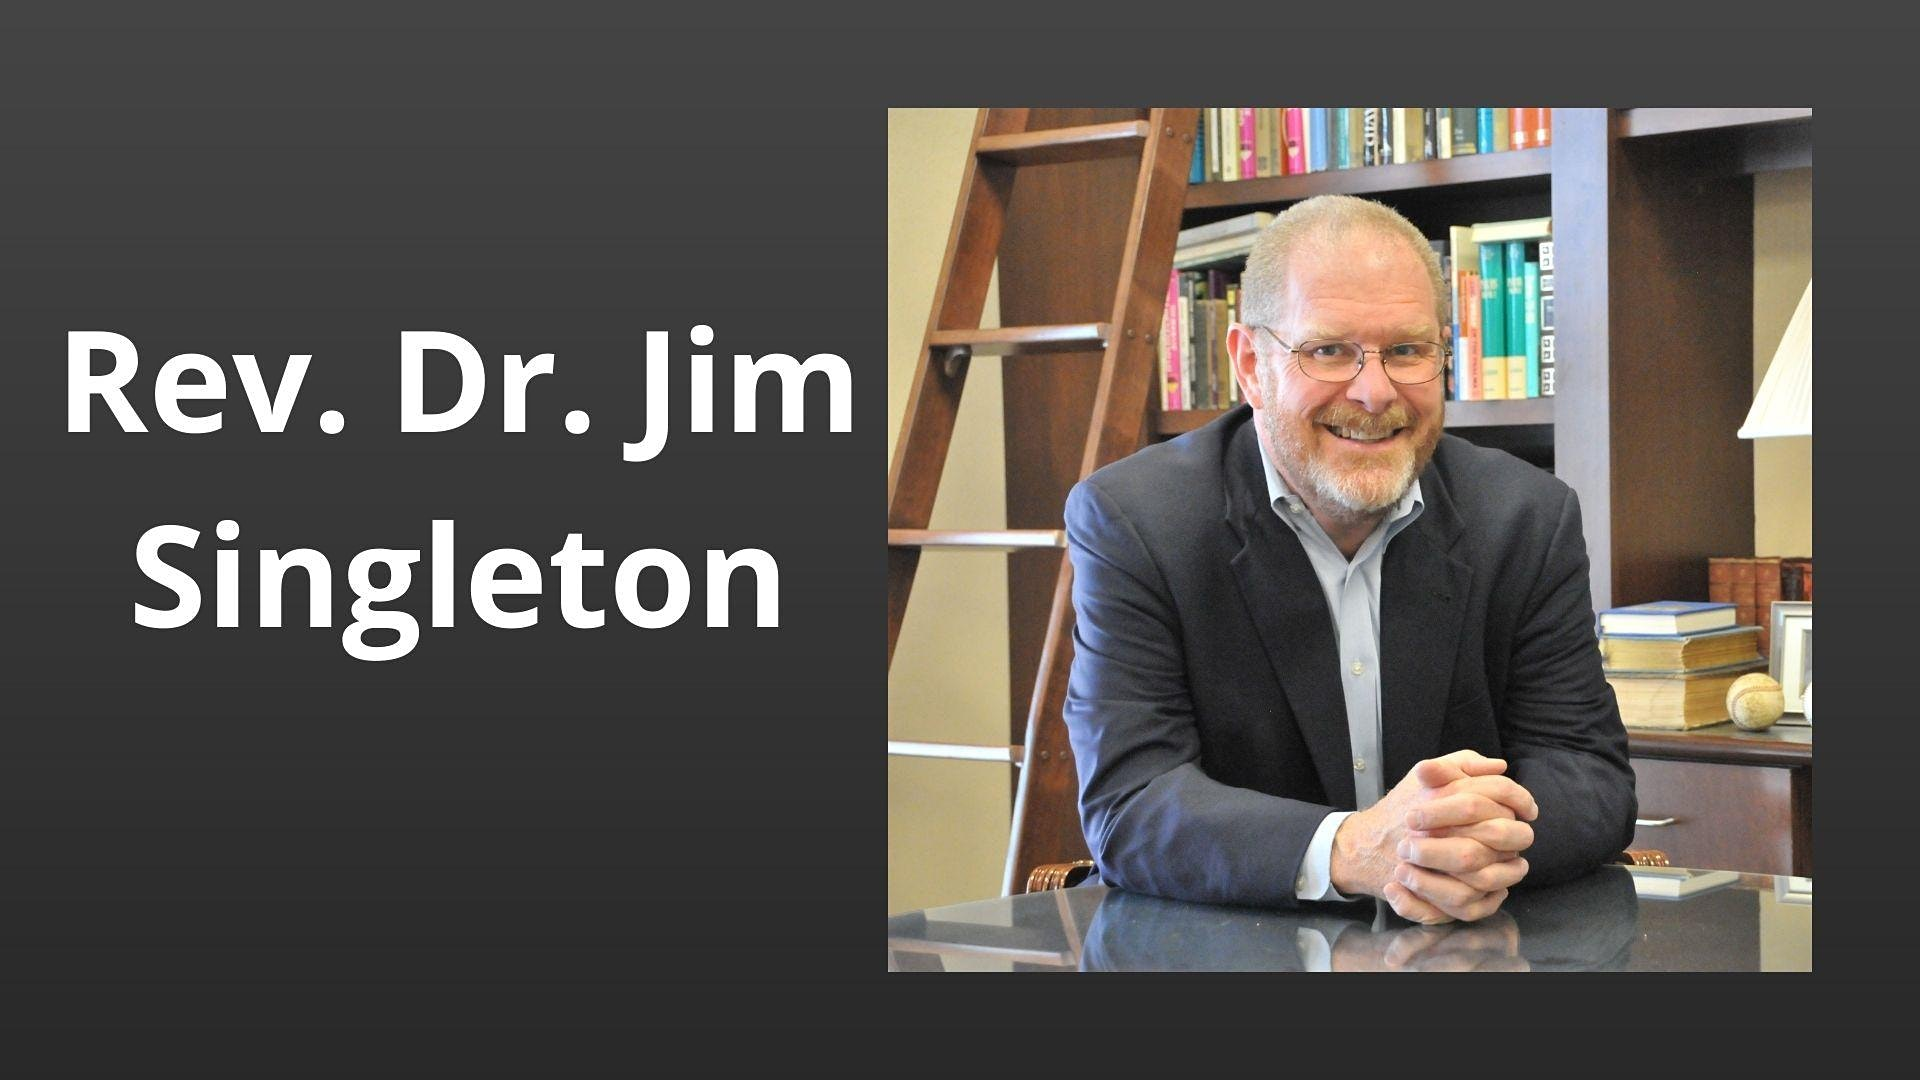 Join Rev. Dr. Jim Singleton for a worship service examining the place of race in religion. Sermon based on Mark 8:22-26